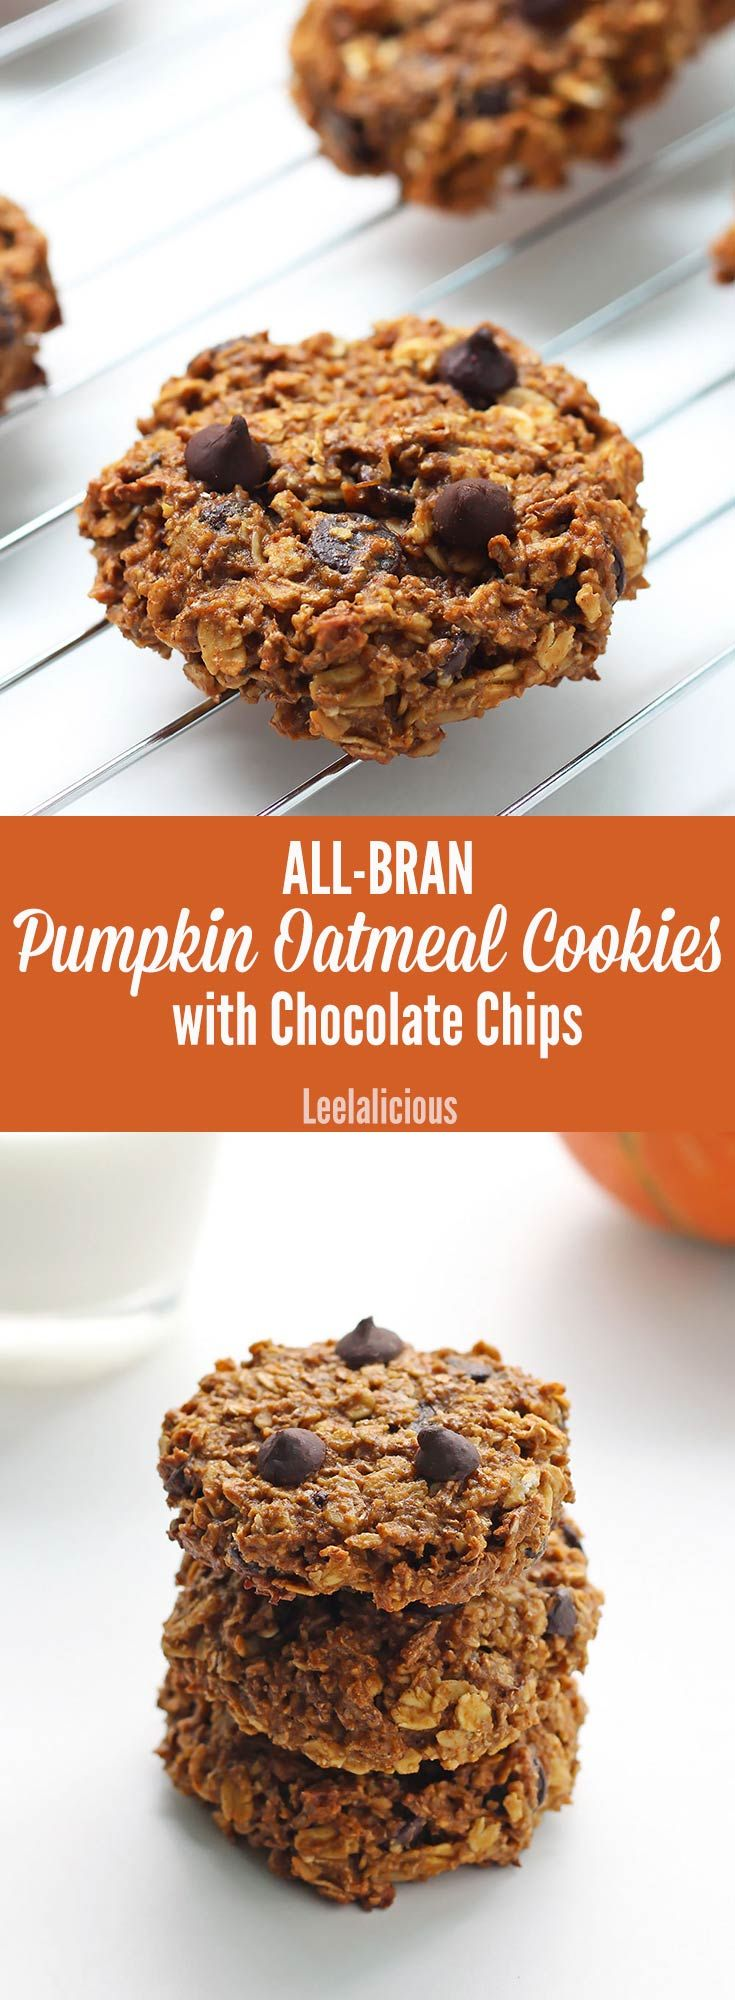 Wholesome Pumpkin Oatmeal Cookies with Chocolate Chips and All-Bran cereal for an extra fibre boost! The recipe for these yummy healthy treats uses whole wheat flour and no refined sugar. AD